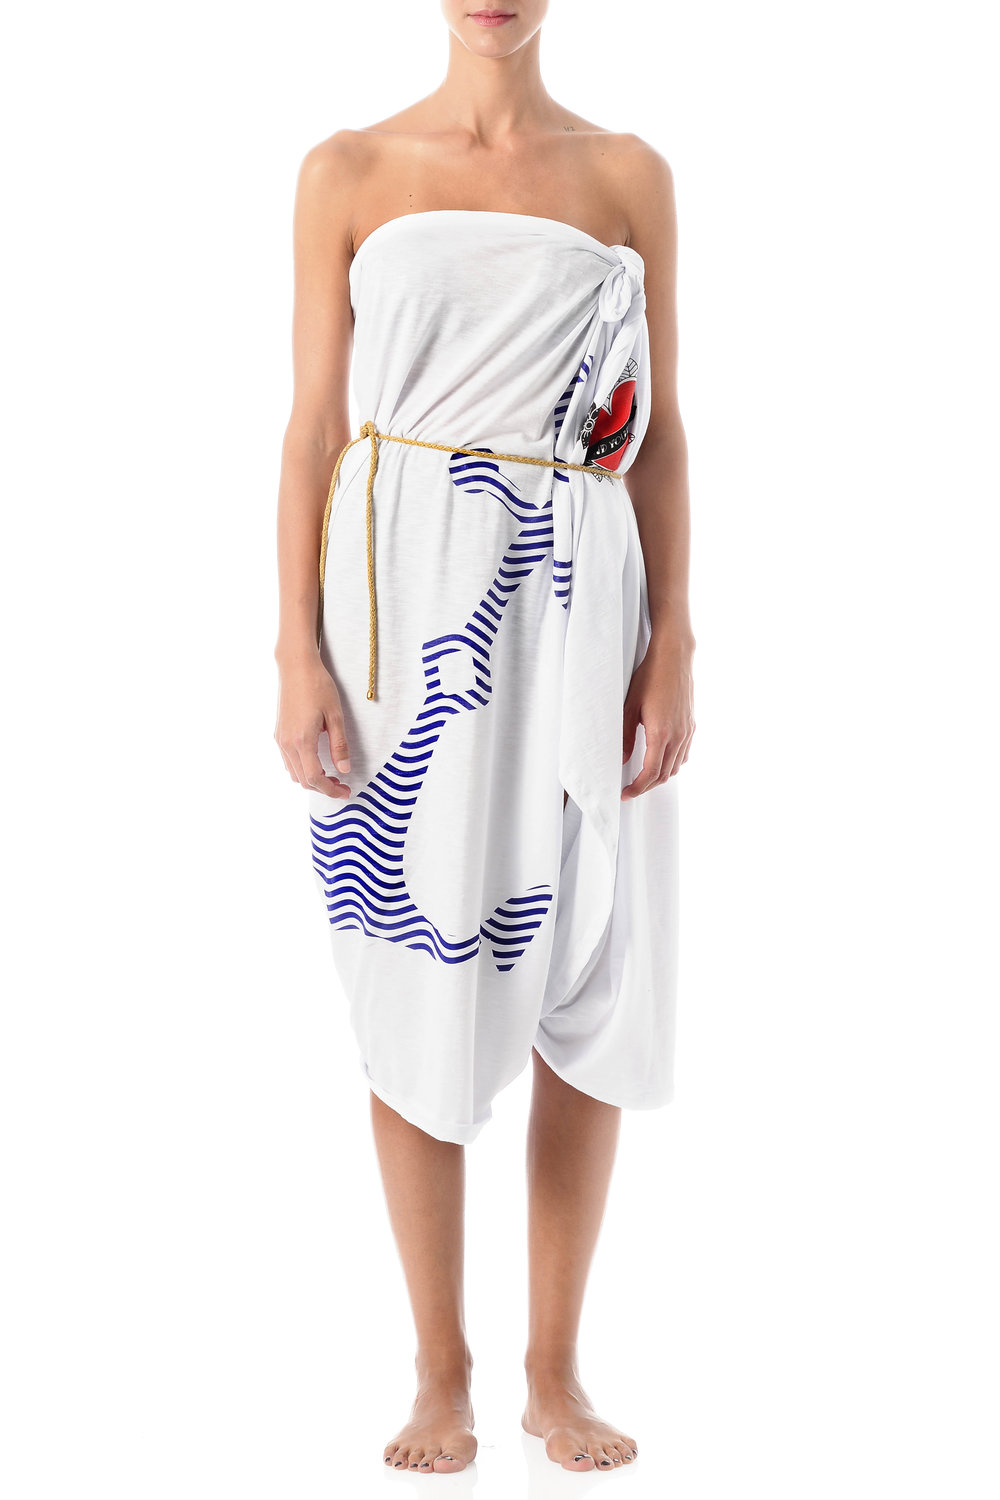 blue-anchor-on-white-cotton-jumpsuit.jpg